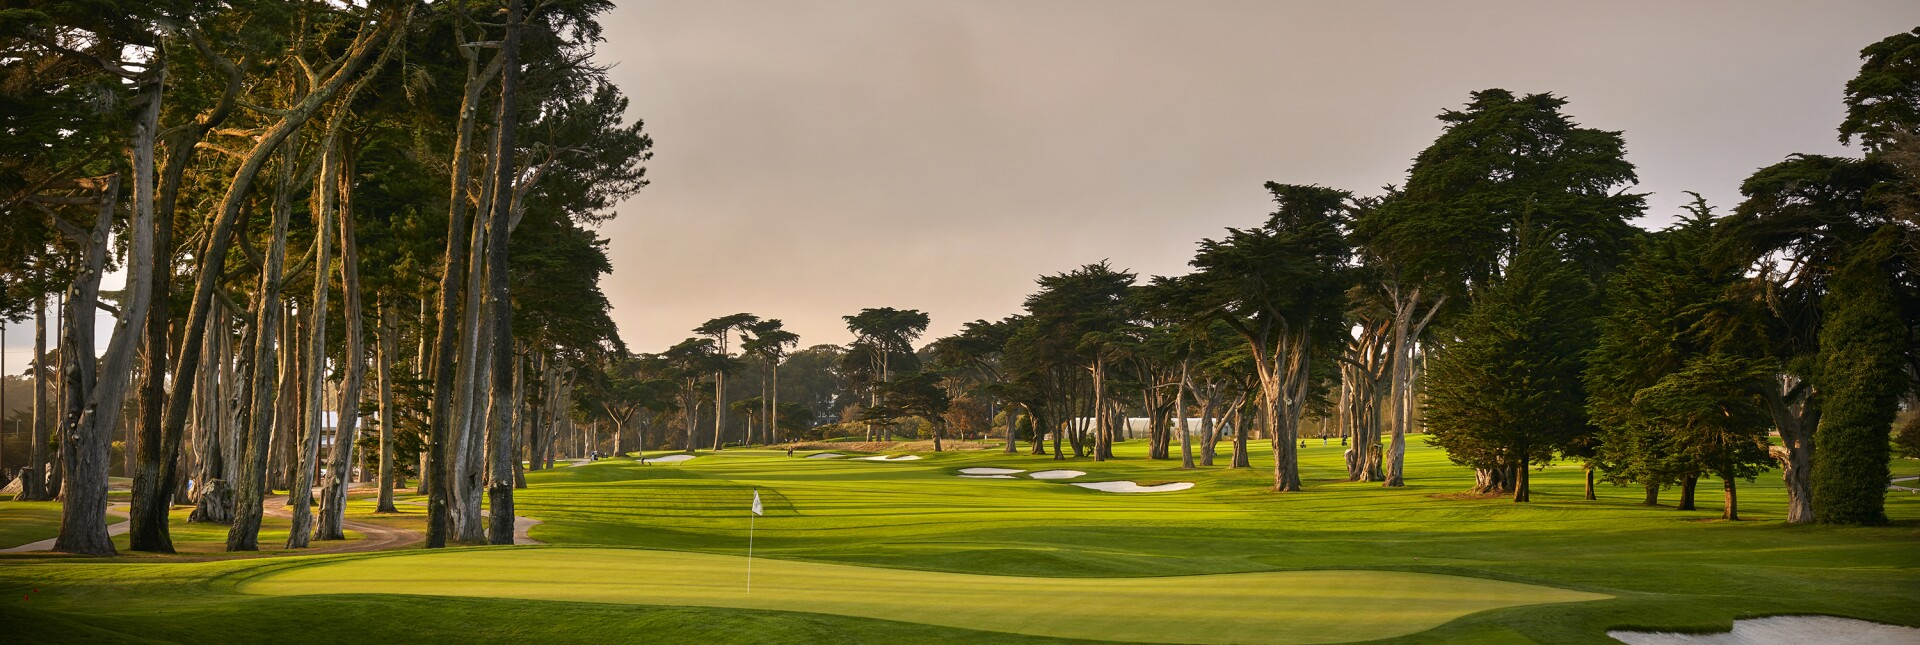 A view from the eighth hole of TPC Harding Park on October 2, 2018 in San Francisco, California